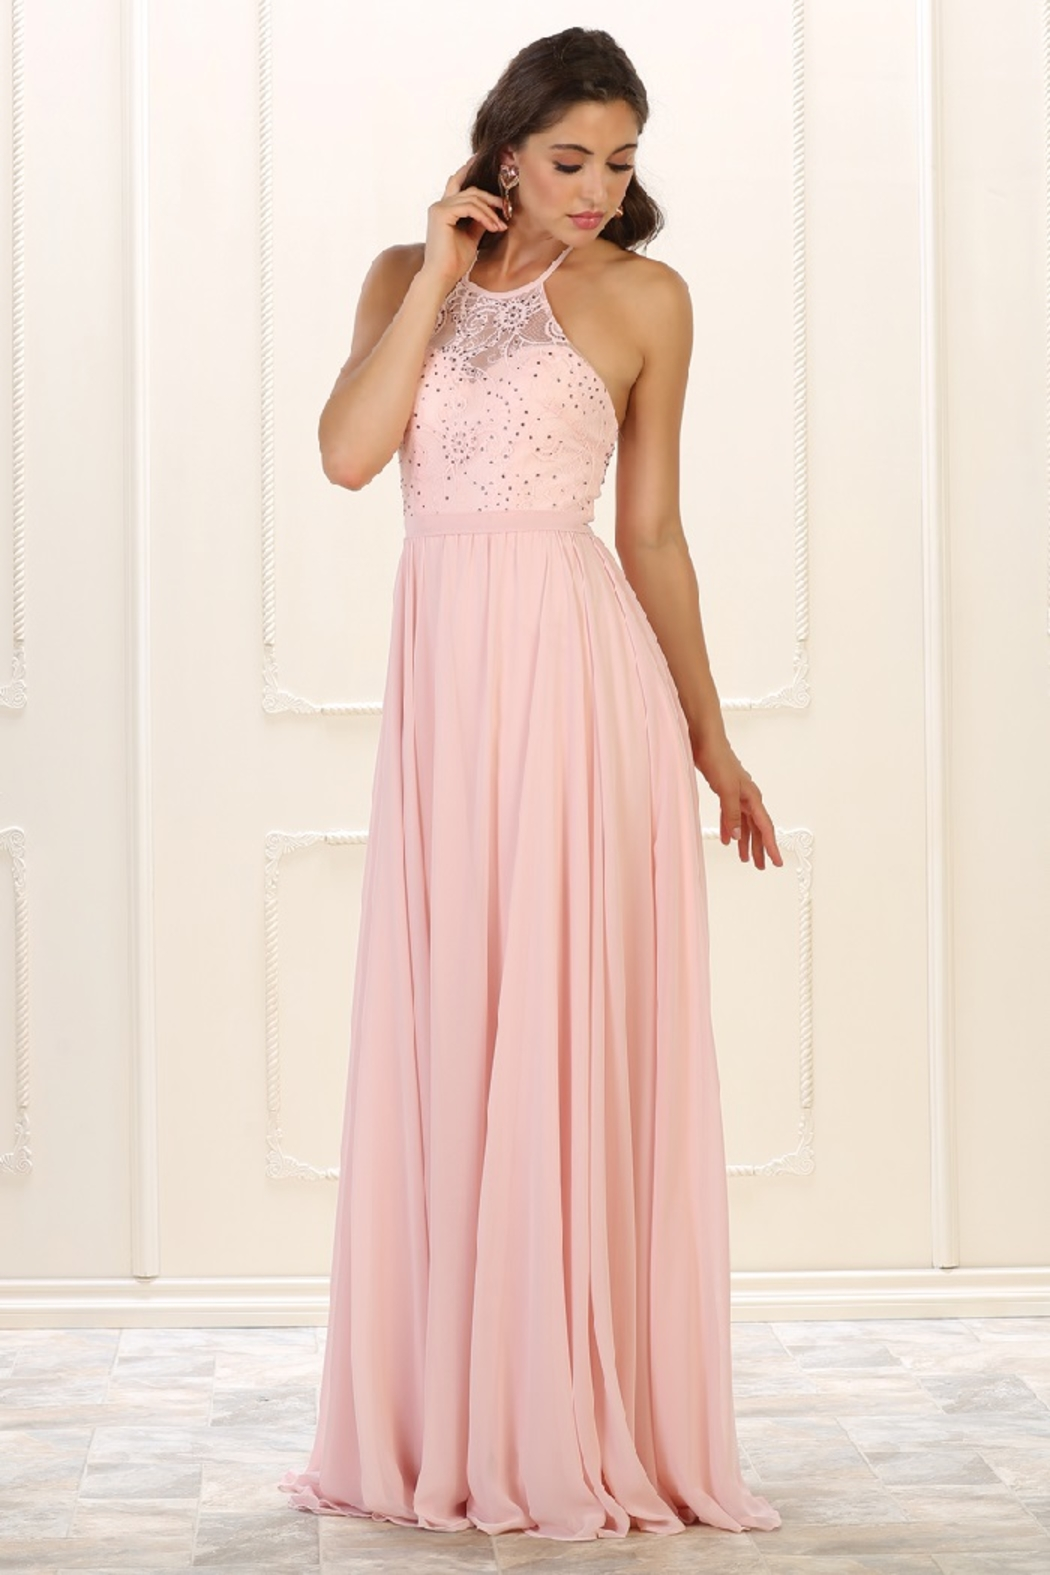 May Queen  Blush Lace Halter Top Formal Long Dress - Main Image